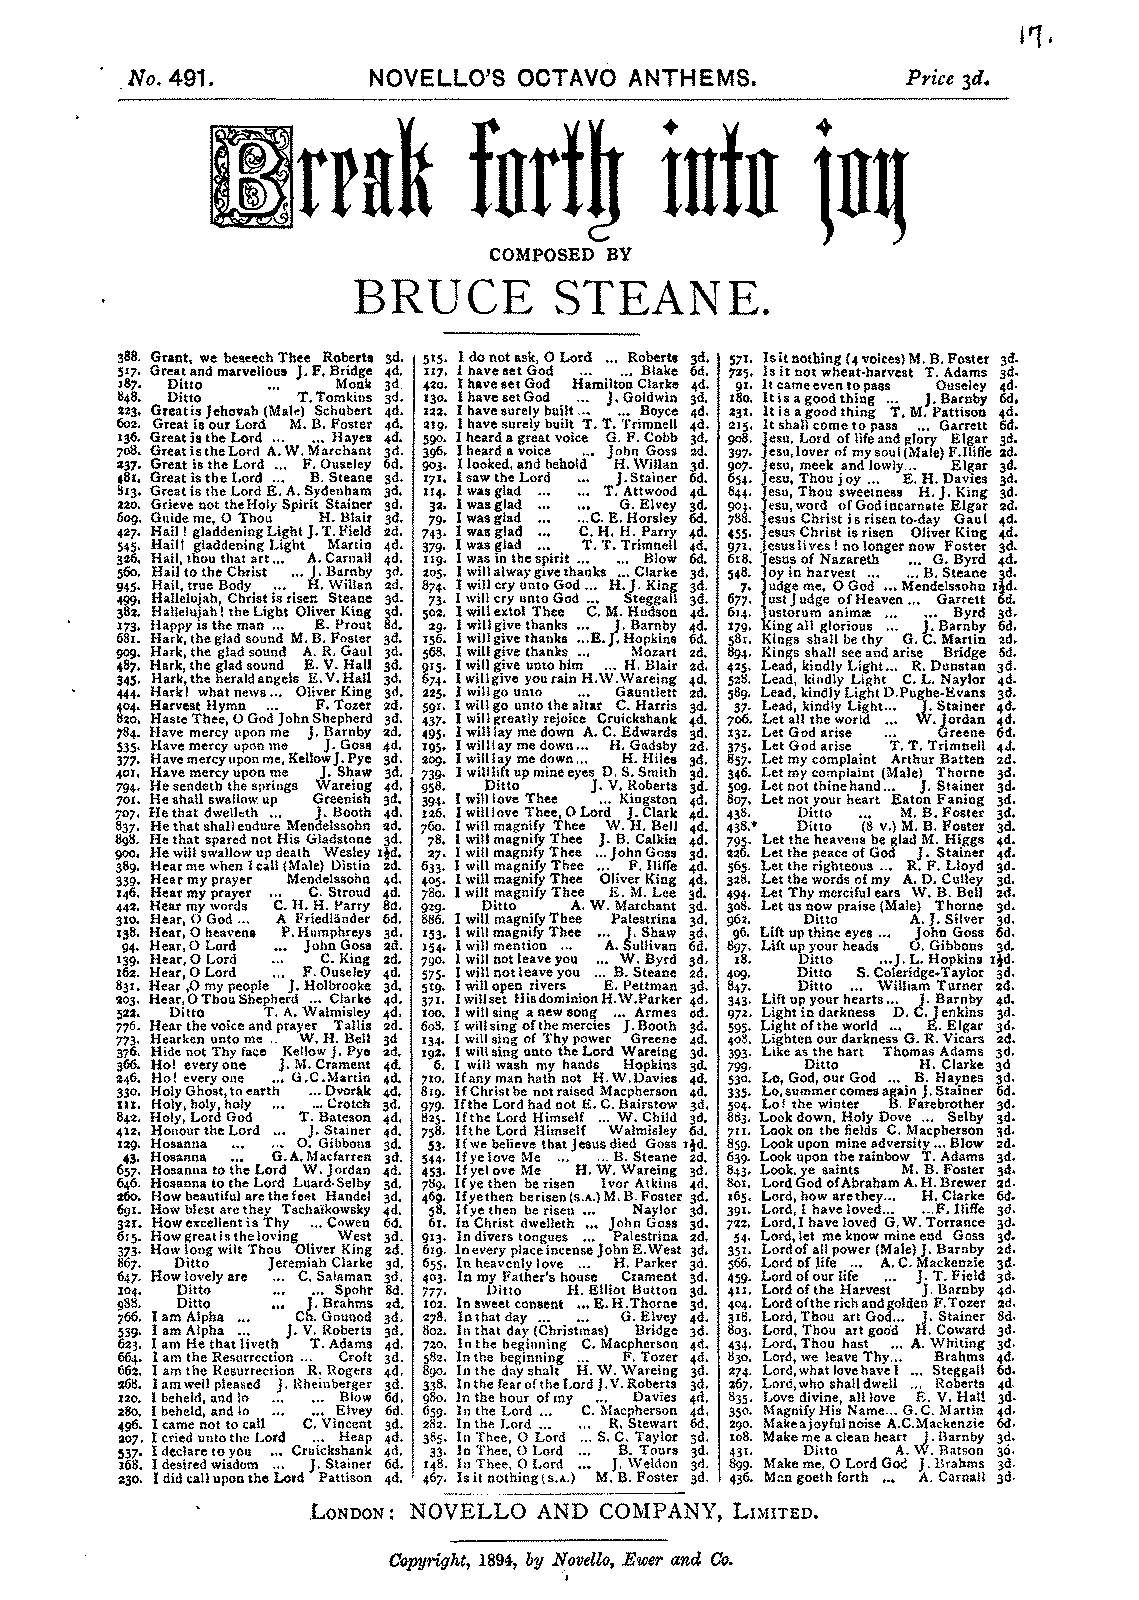 SIBLEY1802.20398.0f65-39087013844420break Steane.pdf